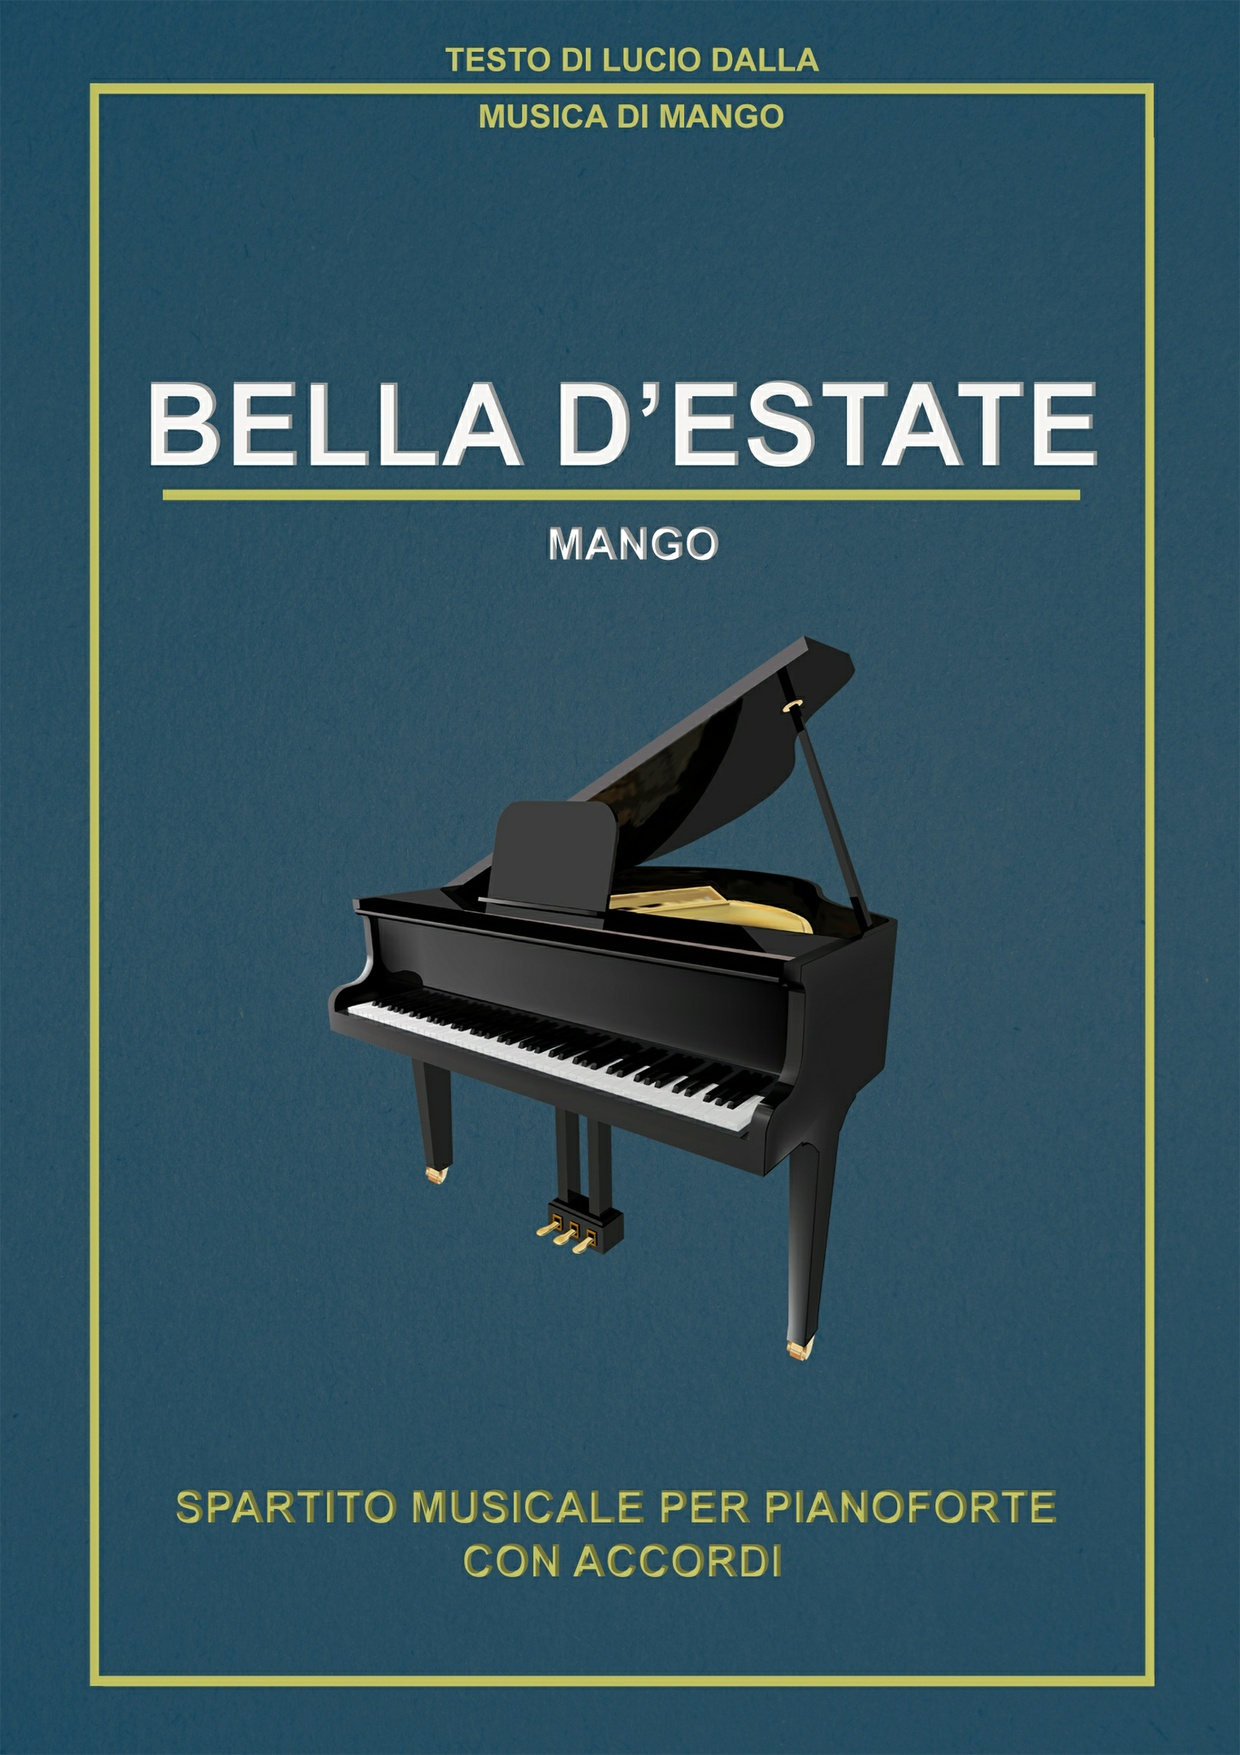 Mango - Bella d'estate